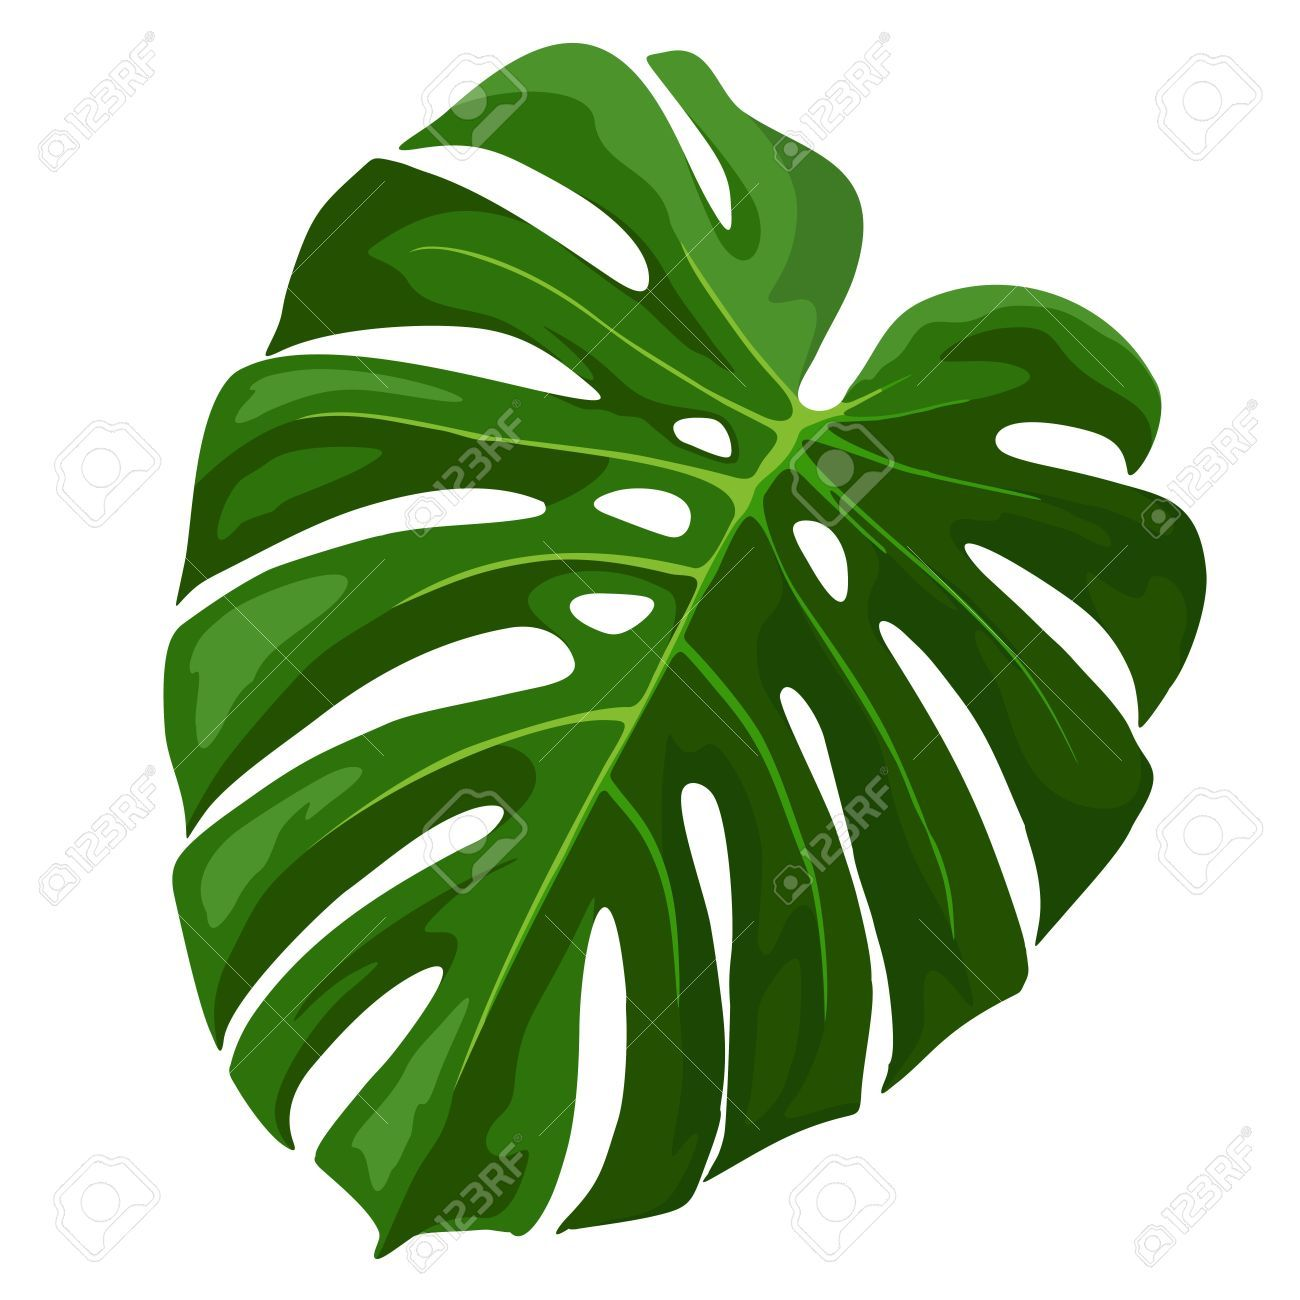 59196169 Tropical Leaf Monstera Plant Isolated On White Stock Vector Jpg 1300 1300 Arte Tropical Ilustracao De Plantas Folhas De Plantas Tropical leaves png free download number 400209430,image file format is png,image size is 20 m,this image has been released since 12/07/2018.all prf license pictures and materials on this site are. 59196169 tropical leaf monstera plant